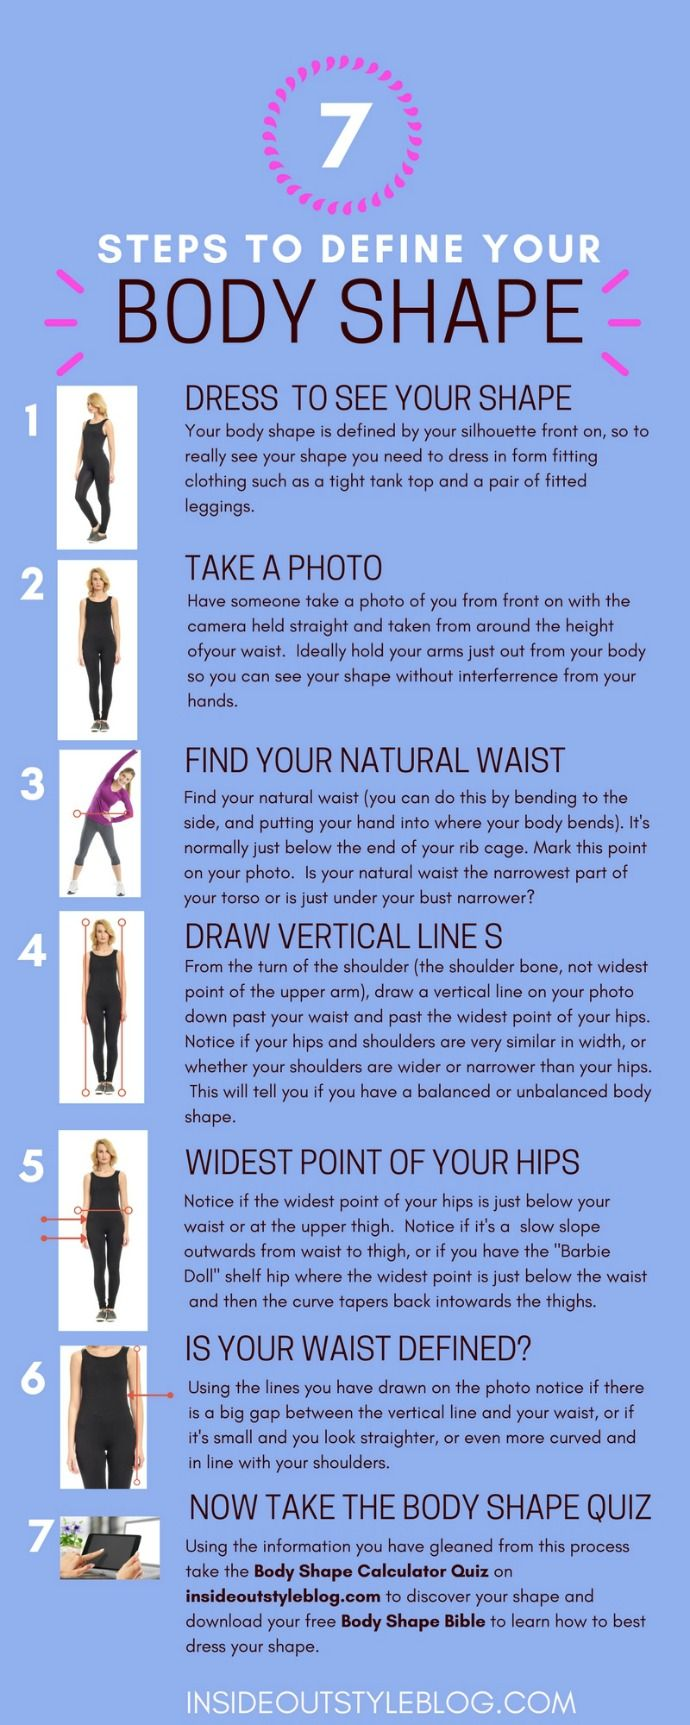 da1ef79cc356 Understanding Your Body Shape - do the body shape calculator quiz and  discover your shape then